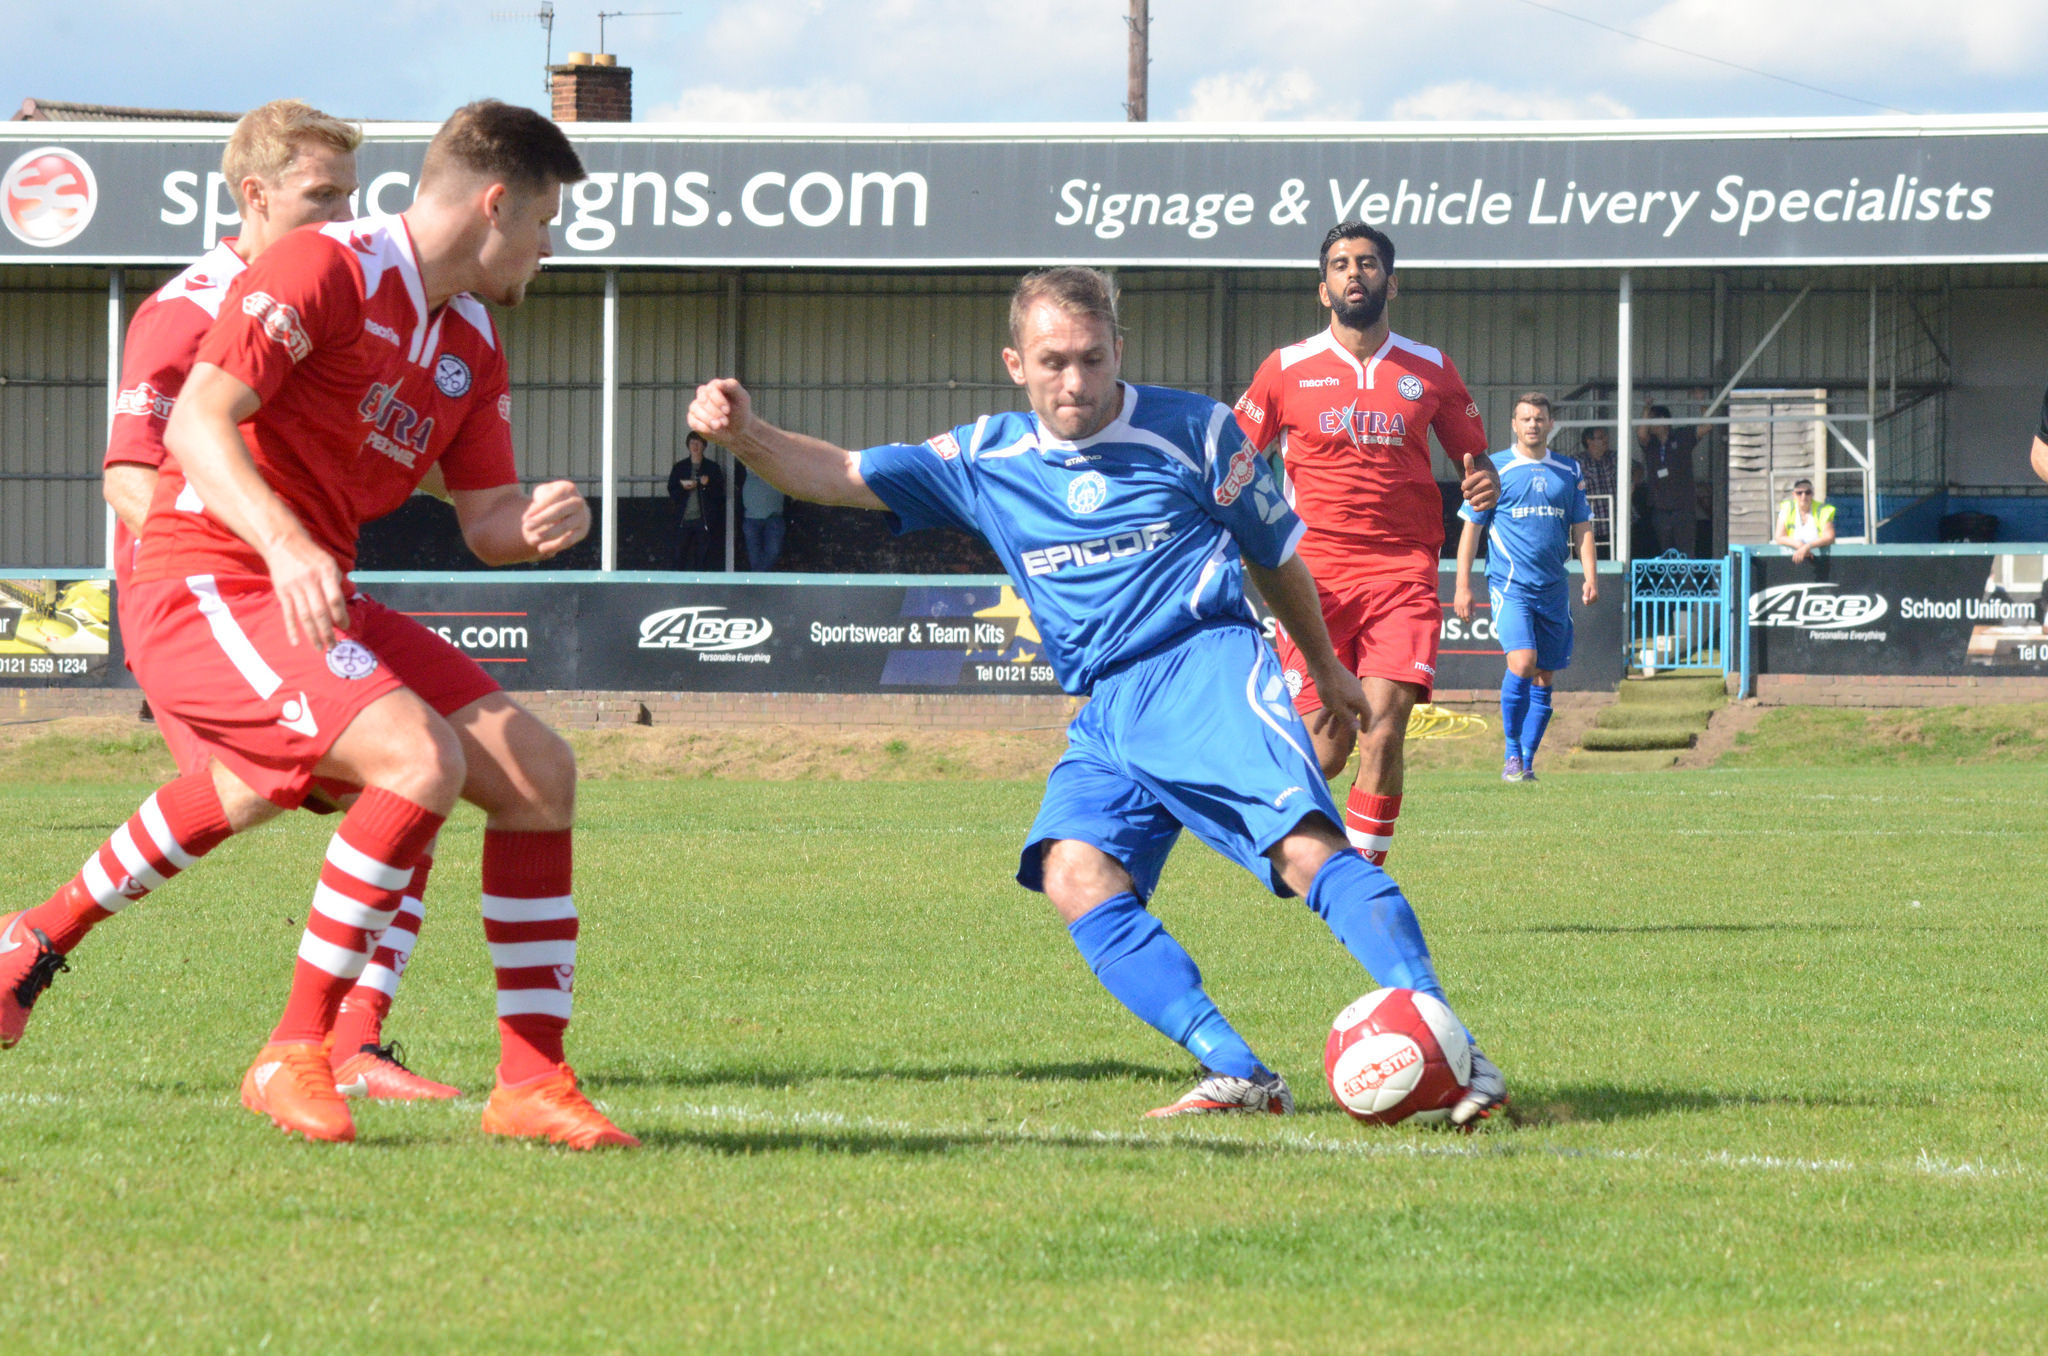 Lee Chilton during his last spell with Halesowen Town. Photo courtesy of Halesowen Town.